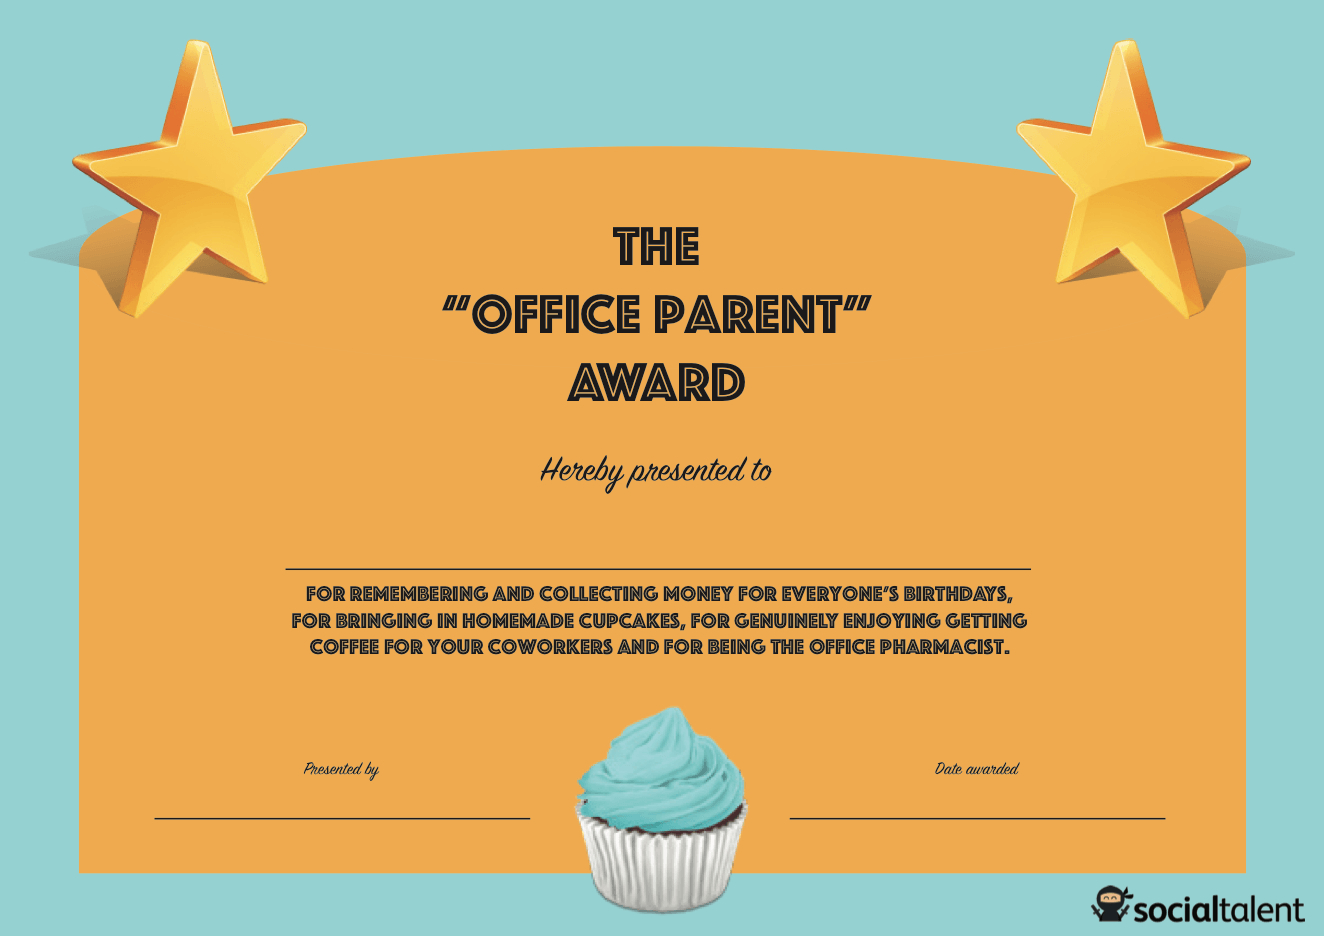 20 Hilarious Office Awards To Embarrass Your Colleagues | Socialtalent - Free Printable Funny Office Awards